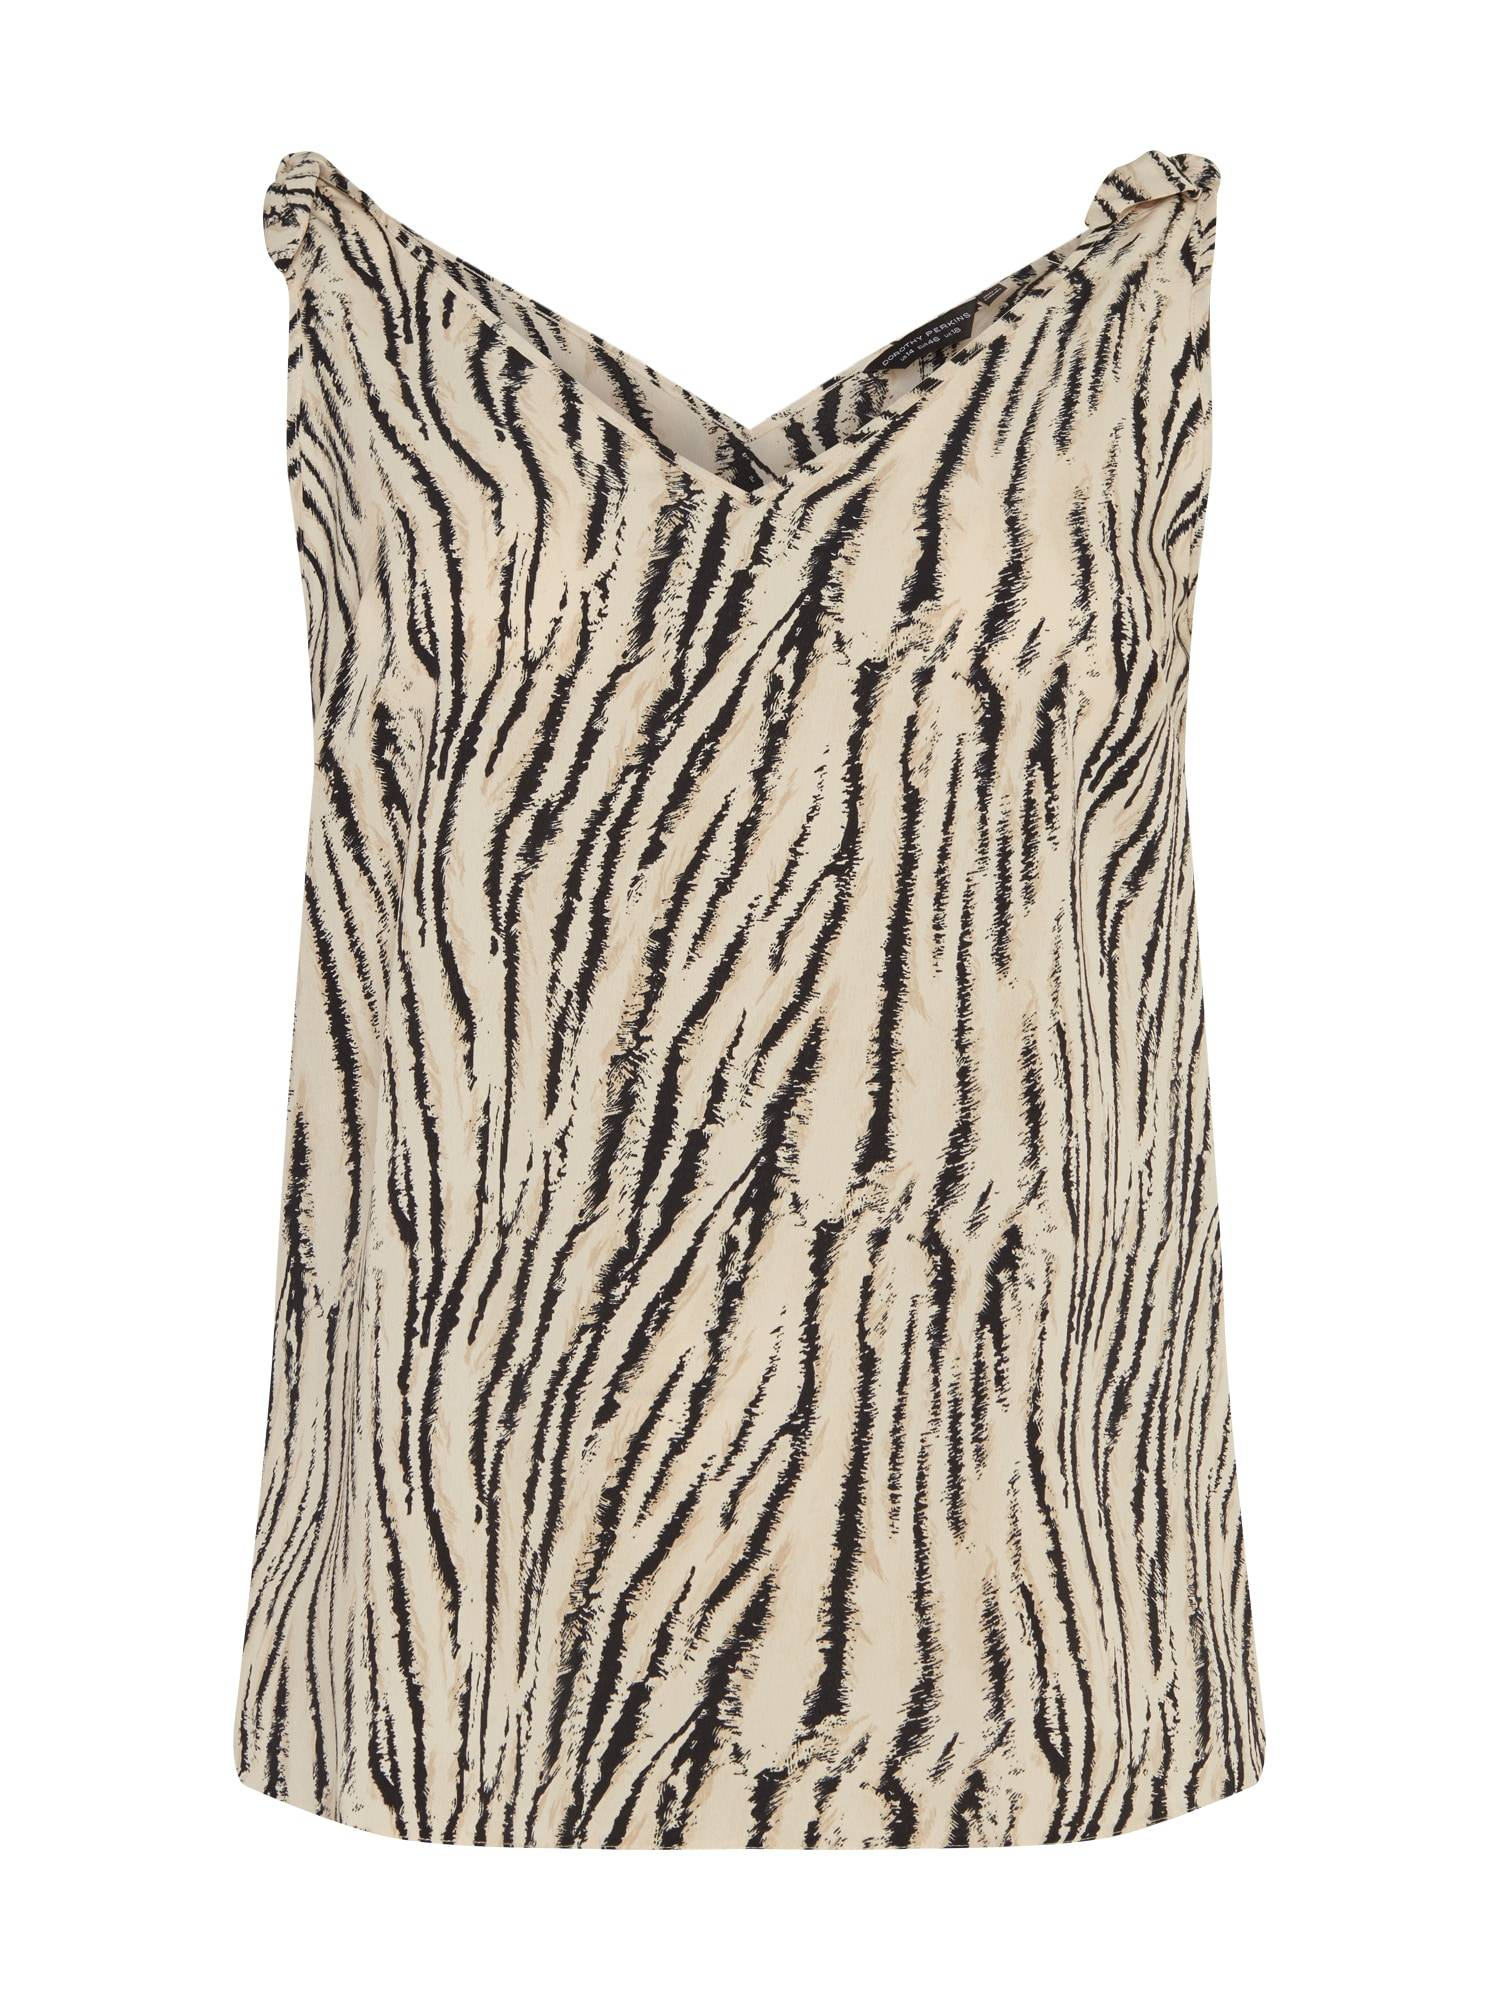 Dorothy Perkins Curve Haut  - Beige - Taille: 18 - female